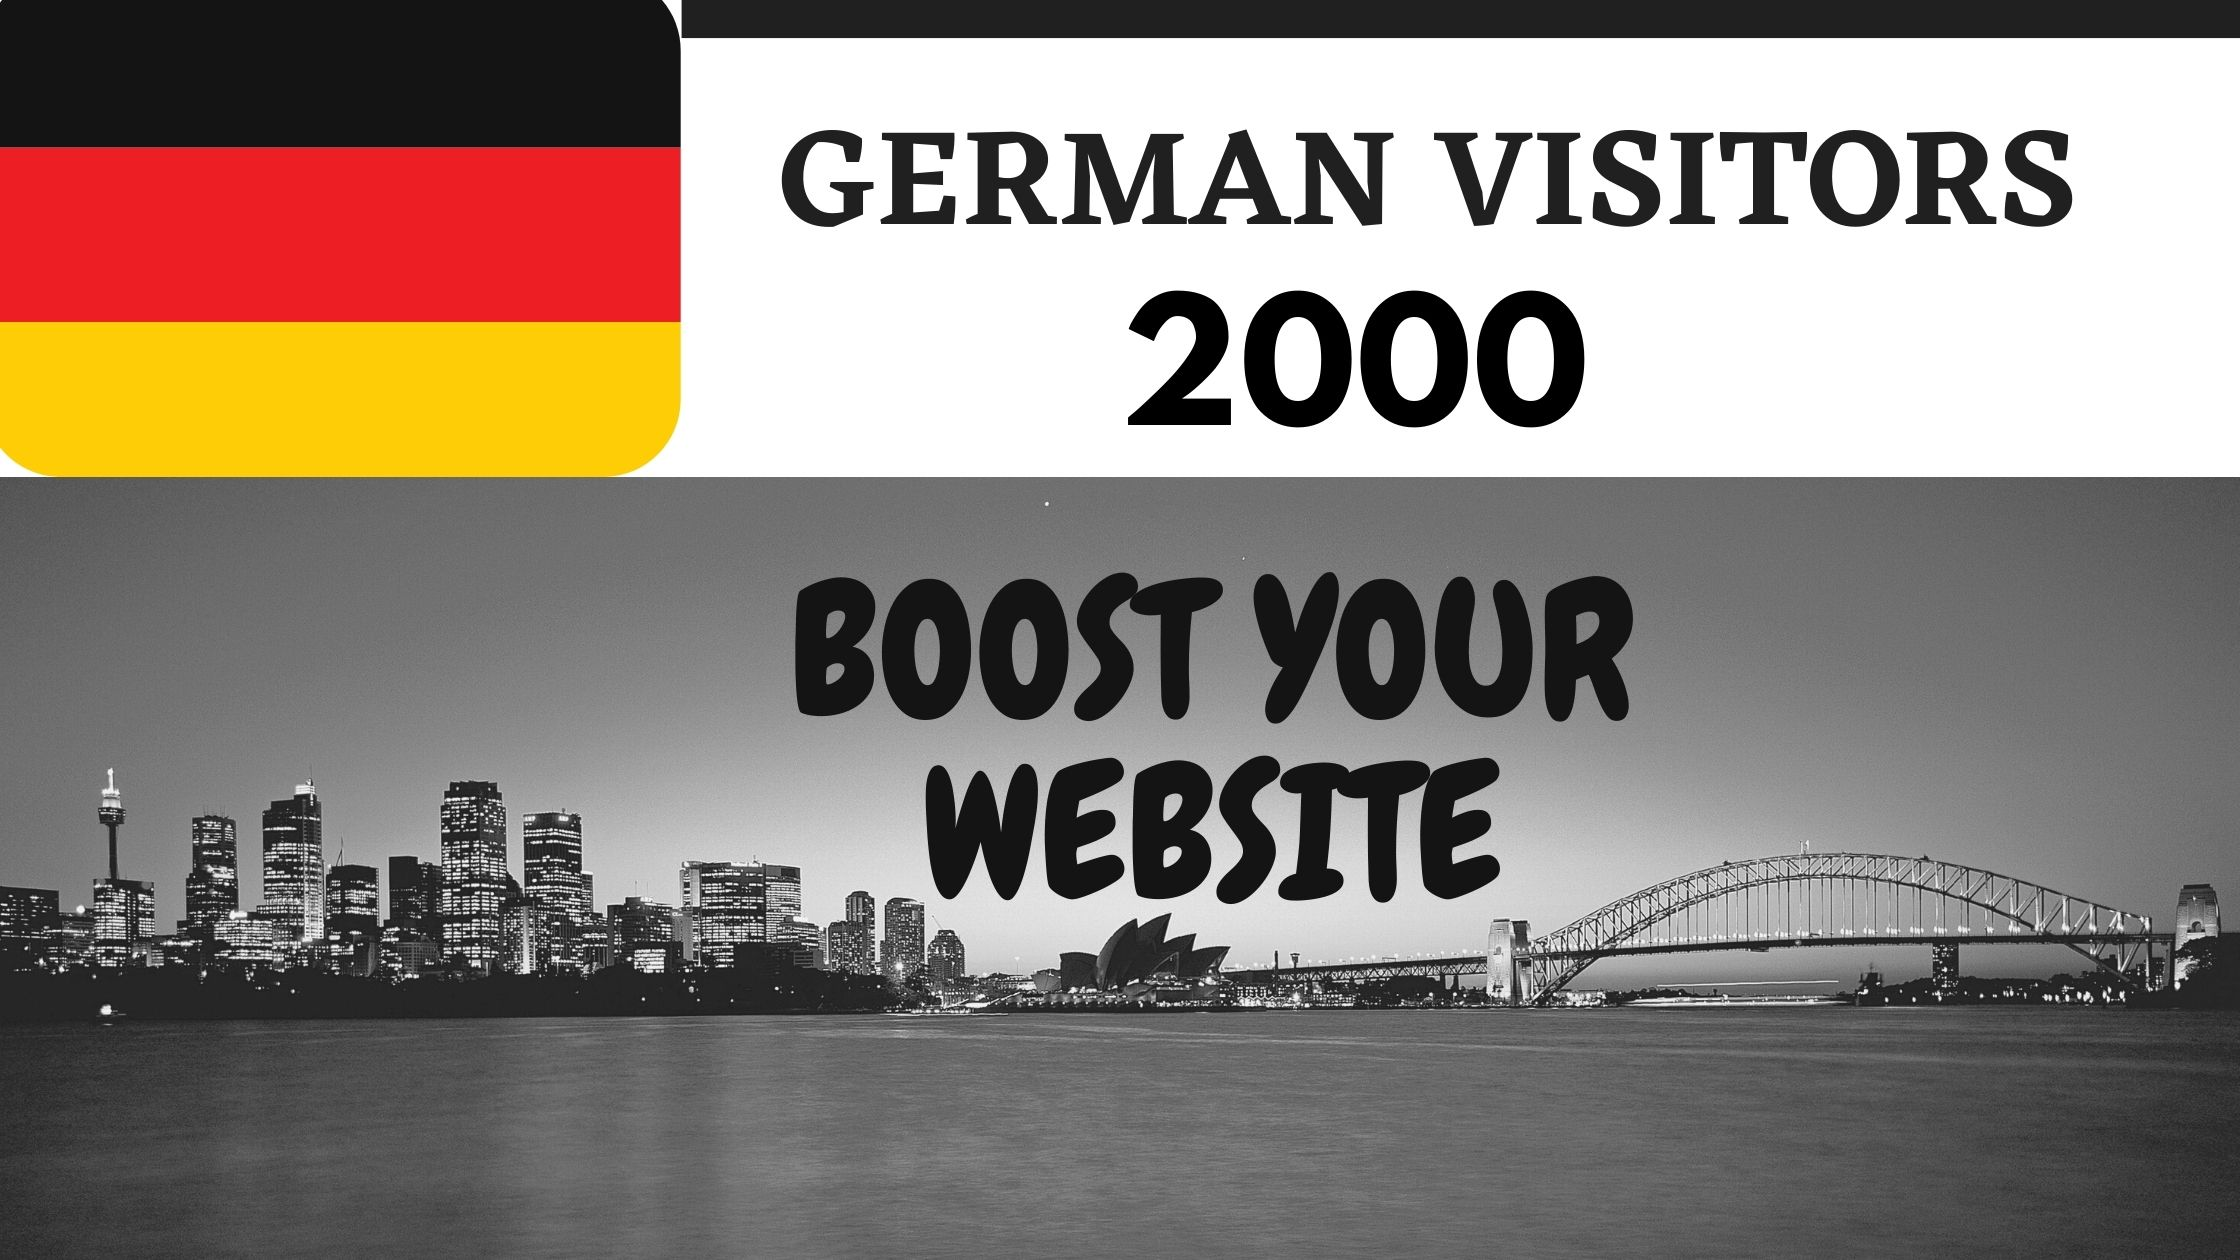 Drive 2000 german web traffic for your website